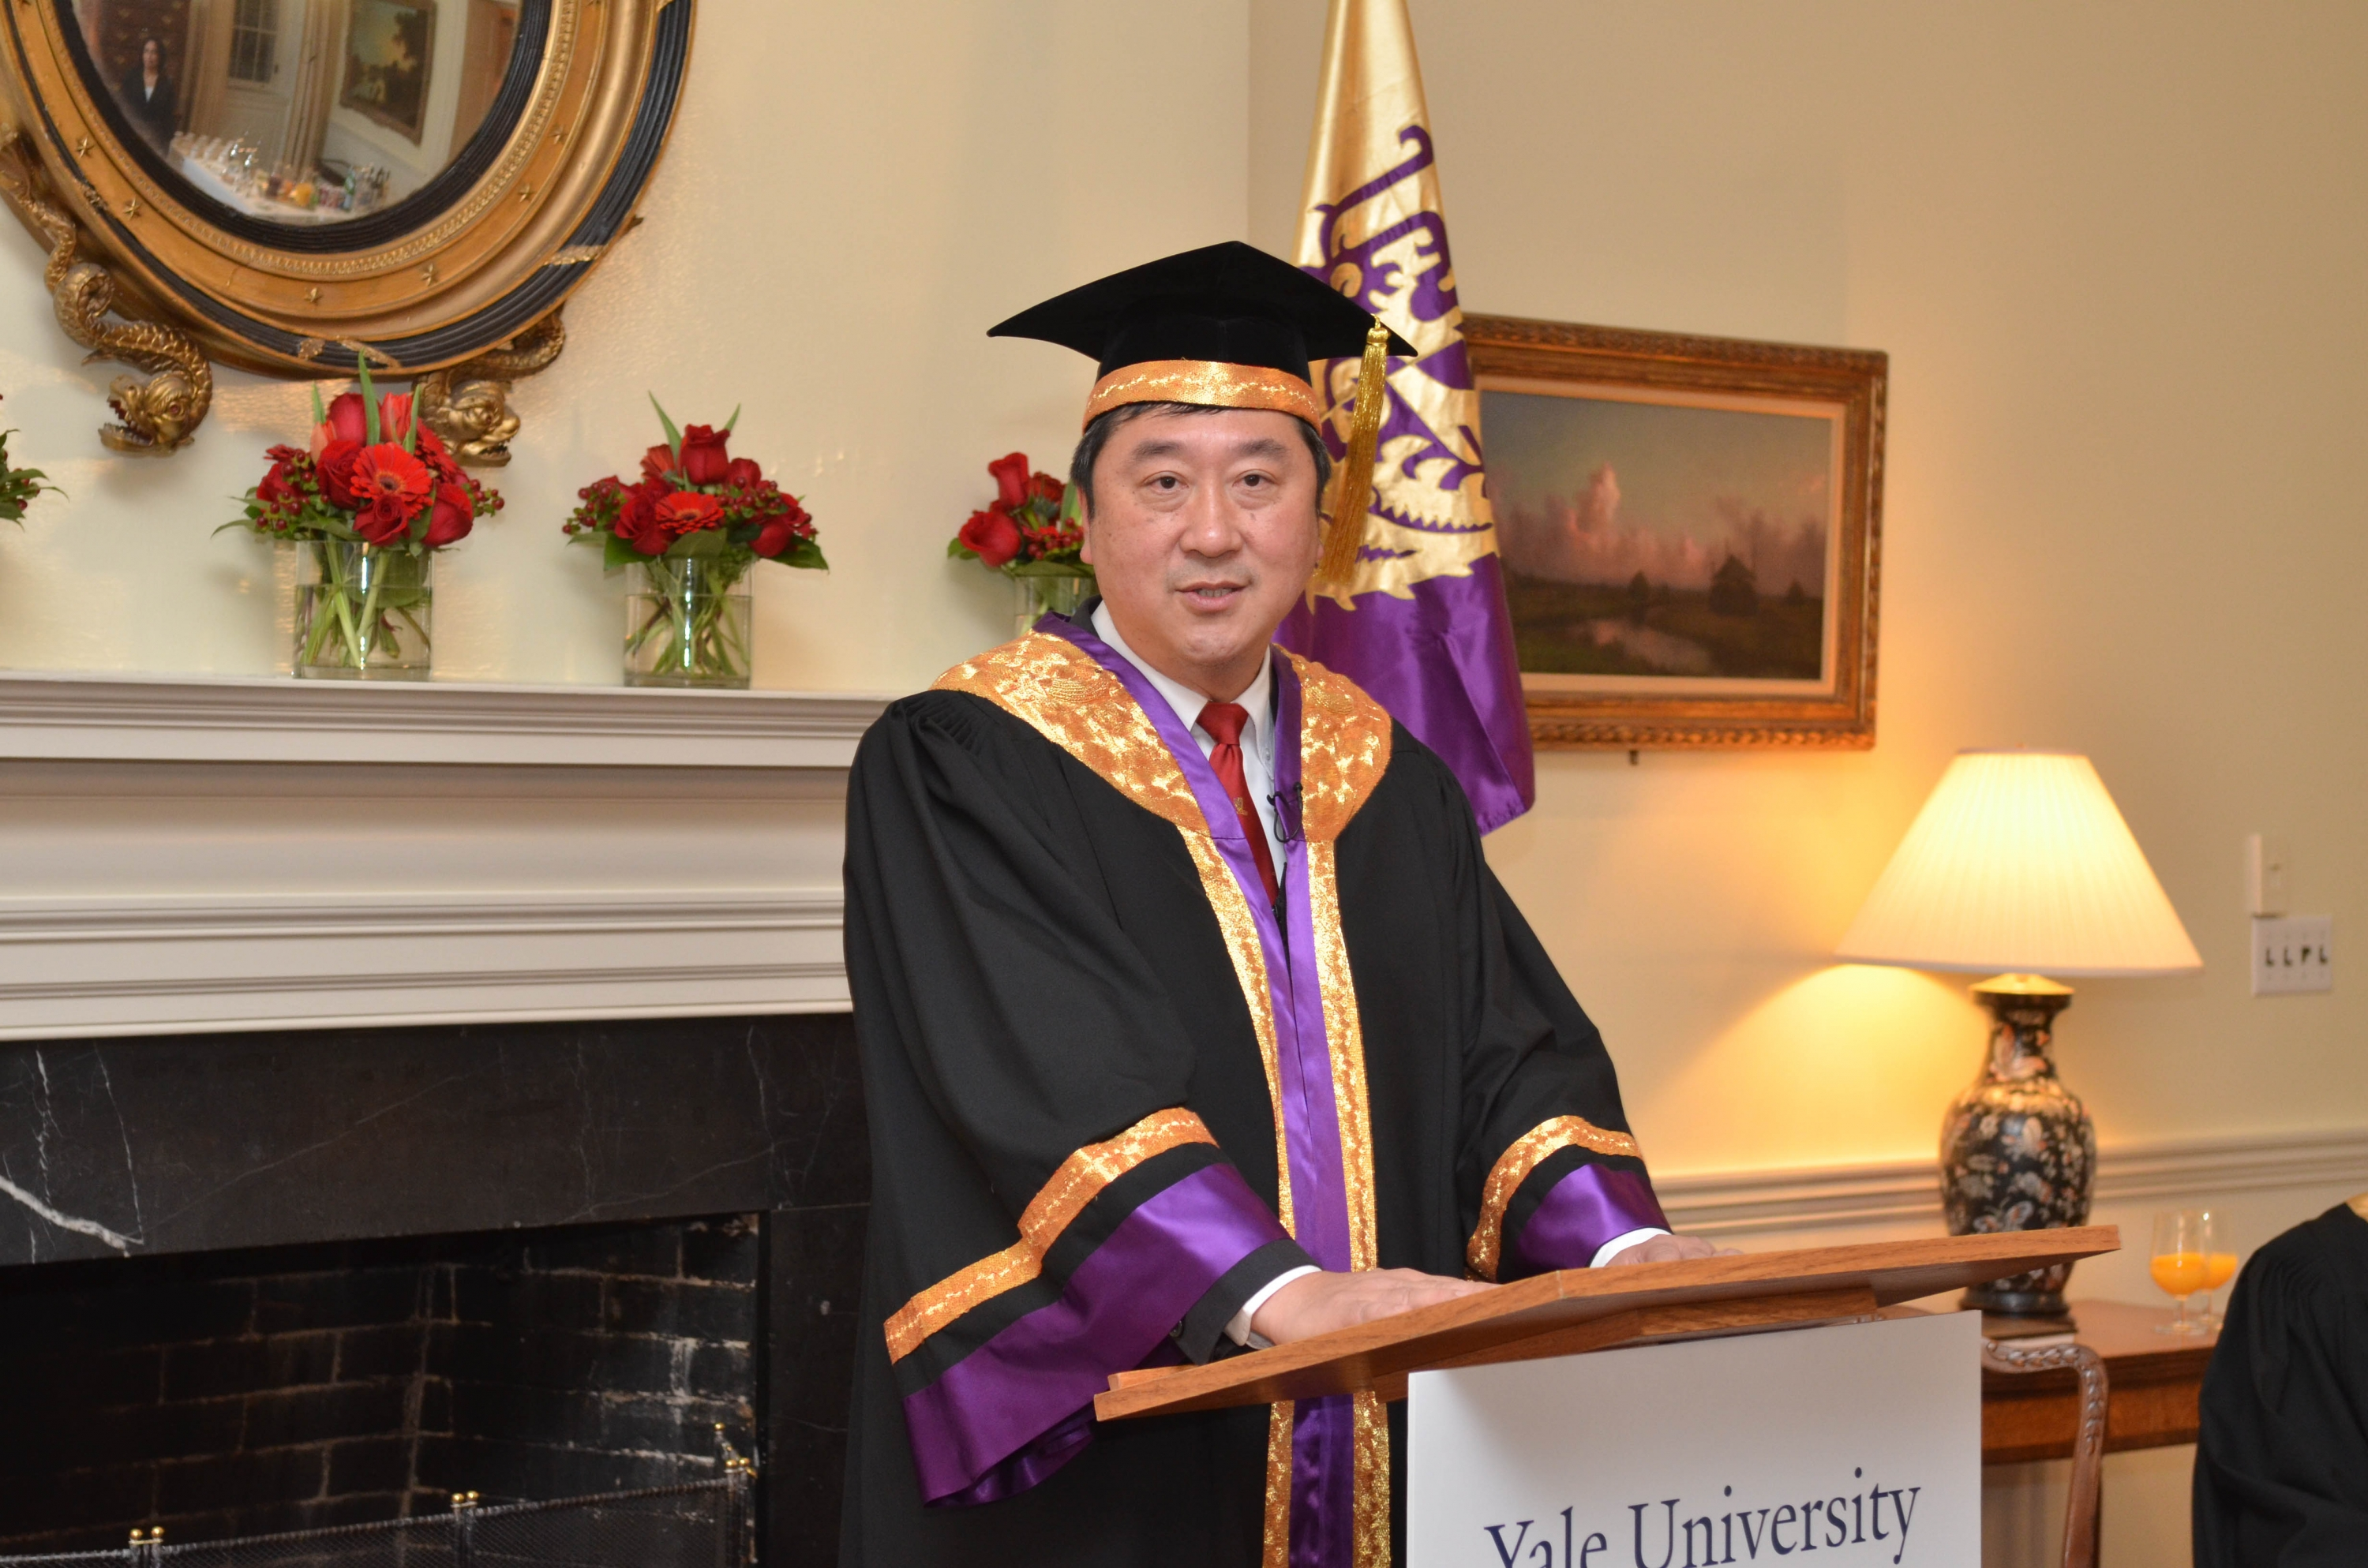 Professor Sung delivers his speech.